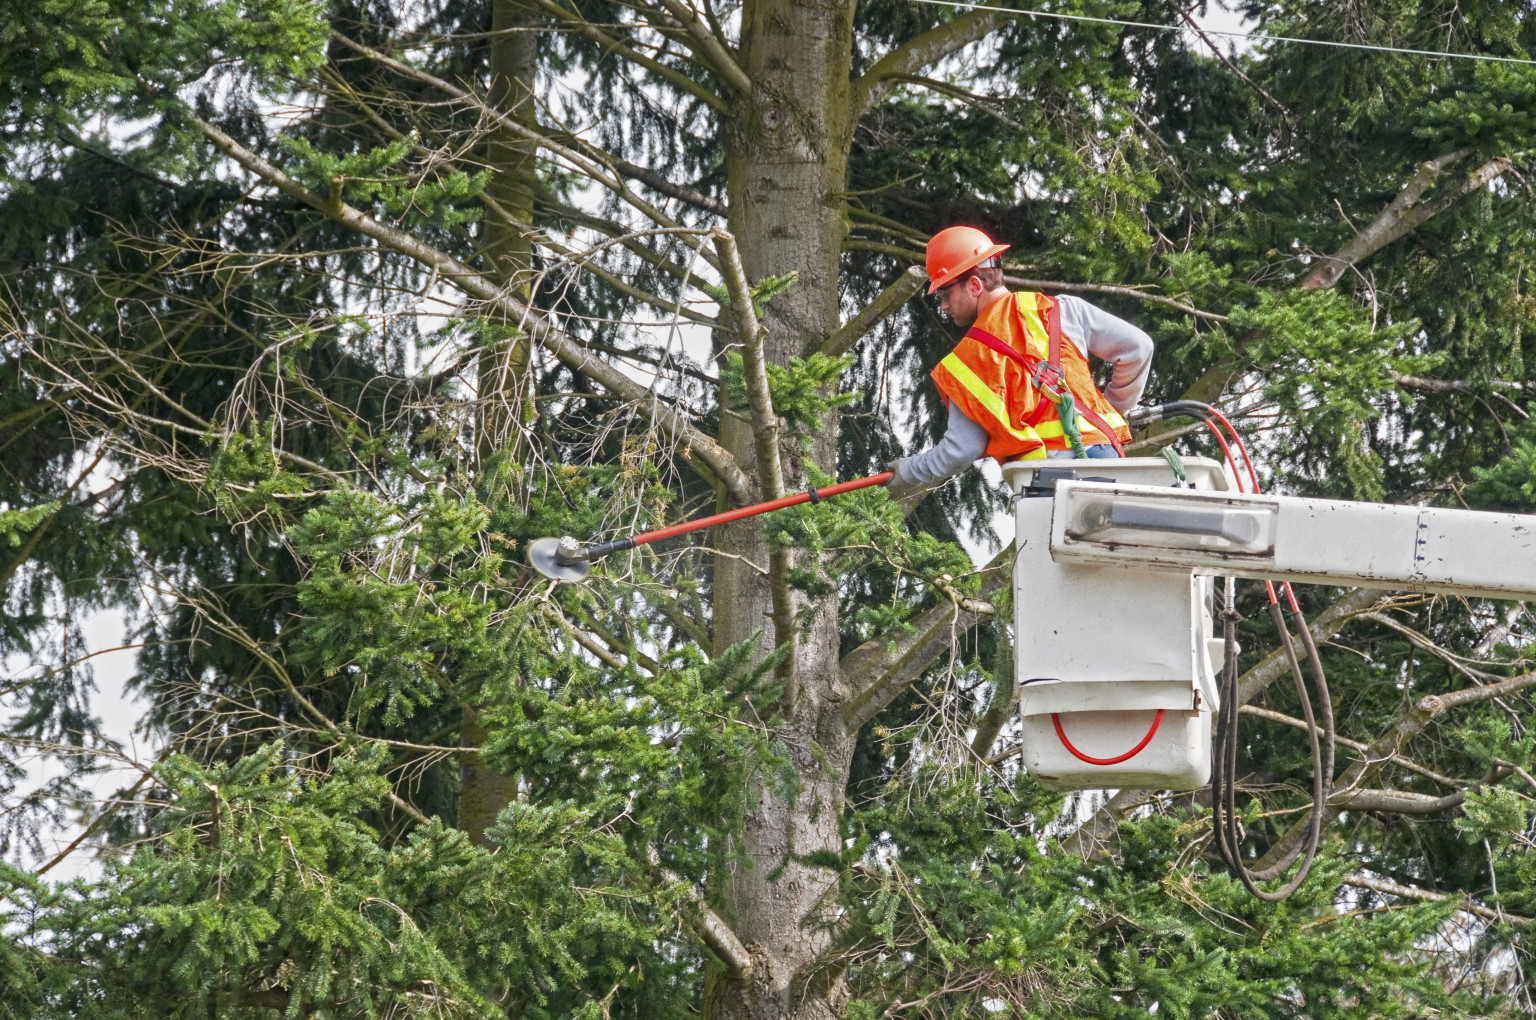 Taking an Unpopular Stance on Line Clearance and Our Trees